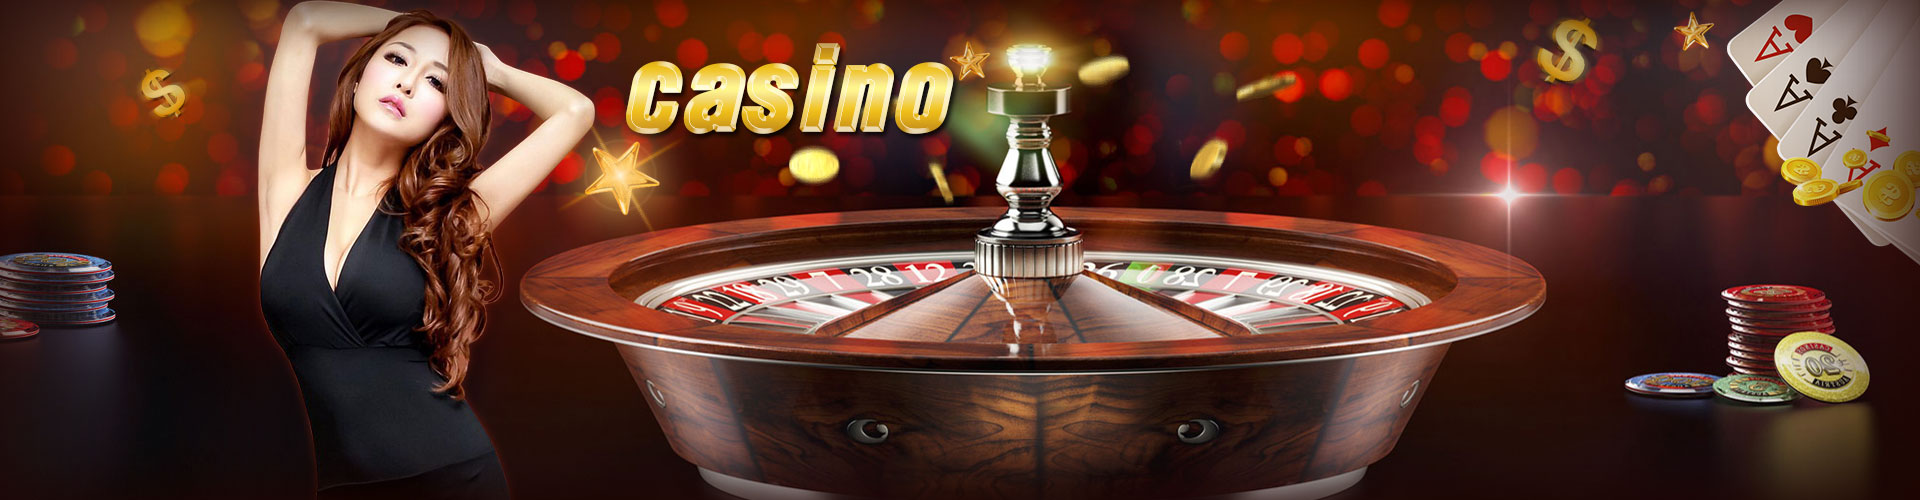 main online casino games